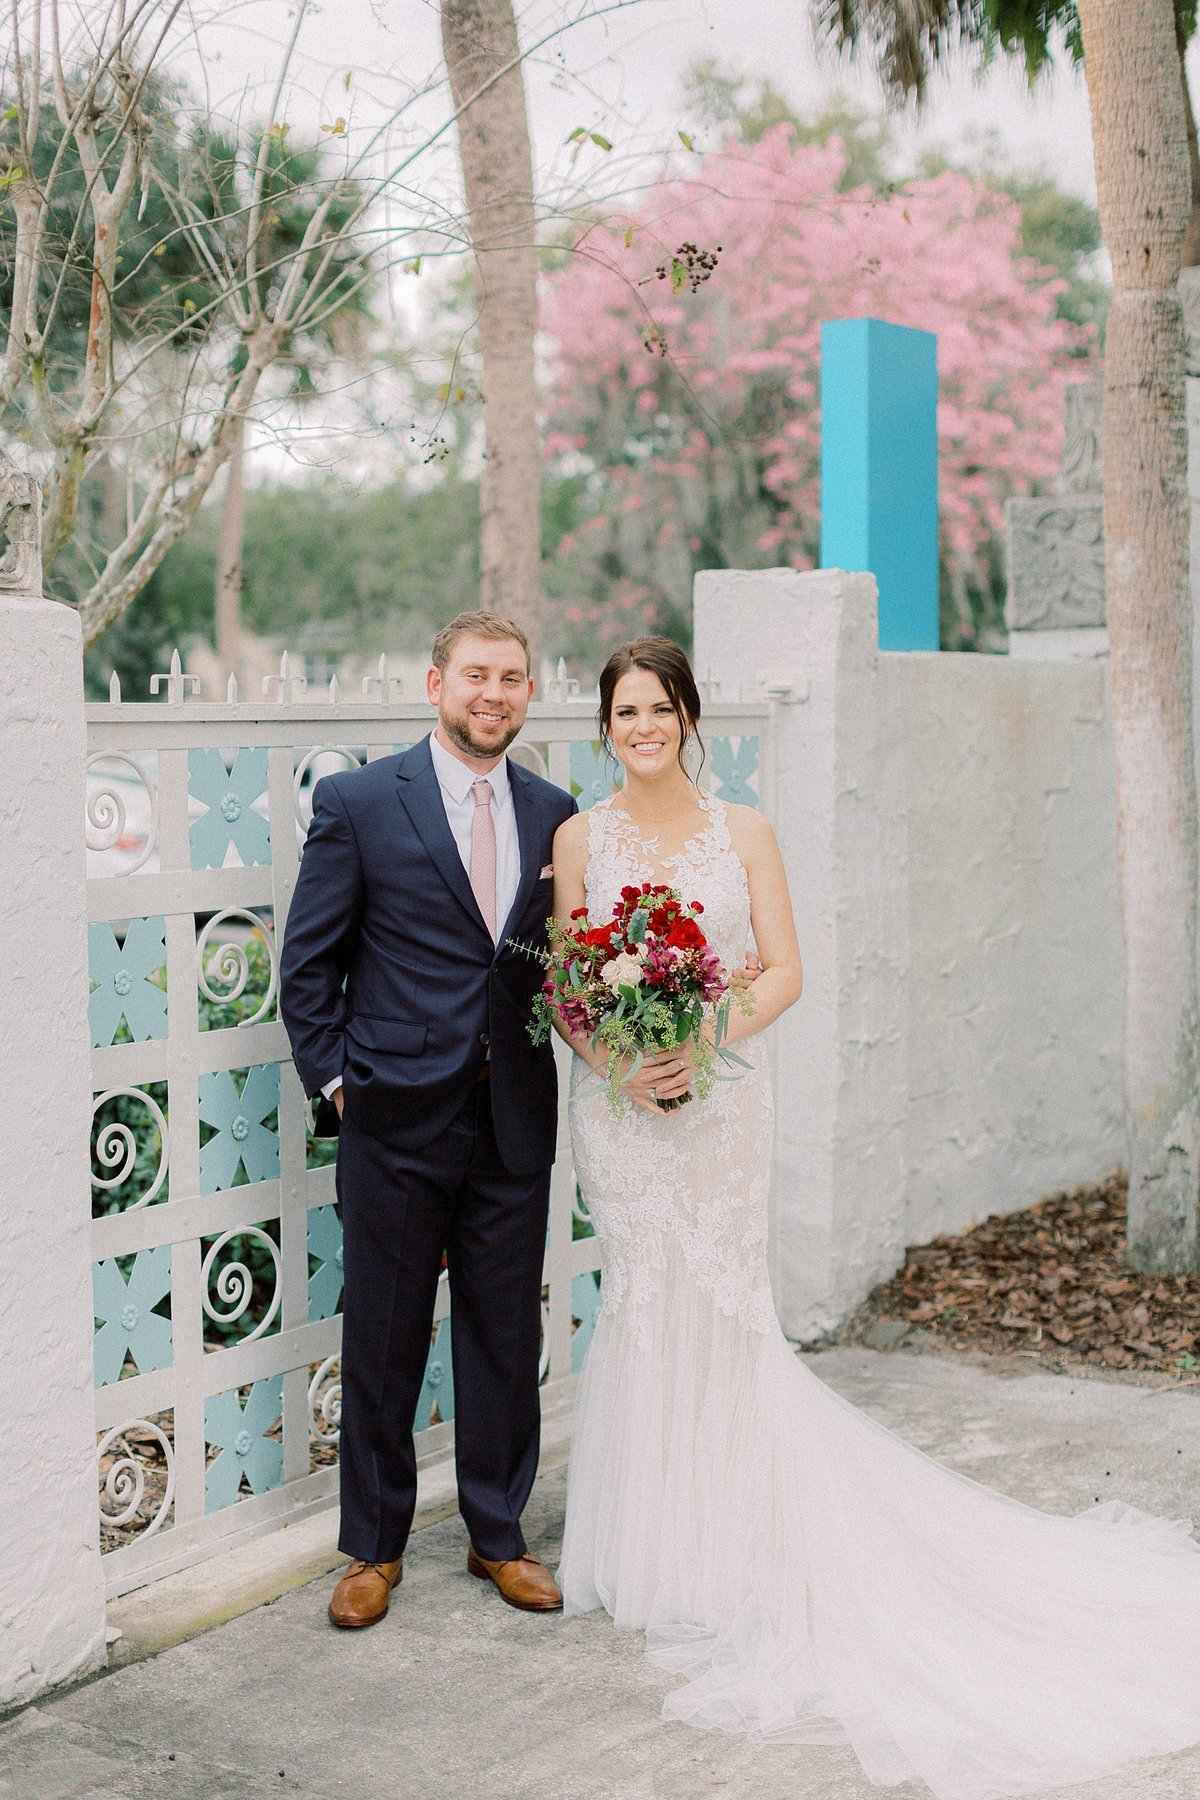 Sergi Wedding Maitland Art and History Museum Casie Marie Photography Orlando Photographer_0014